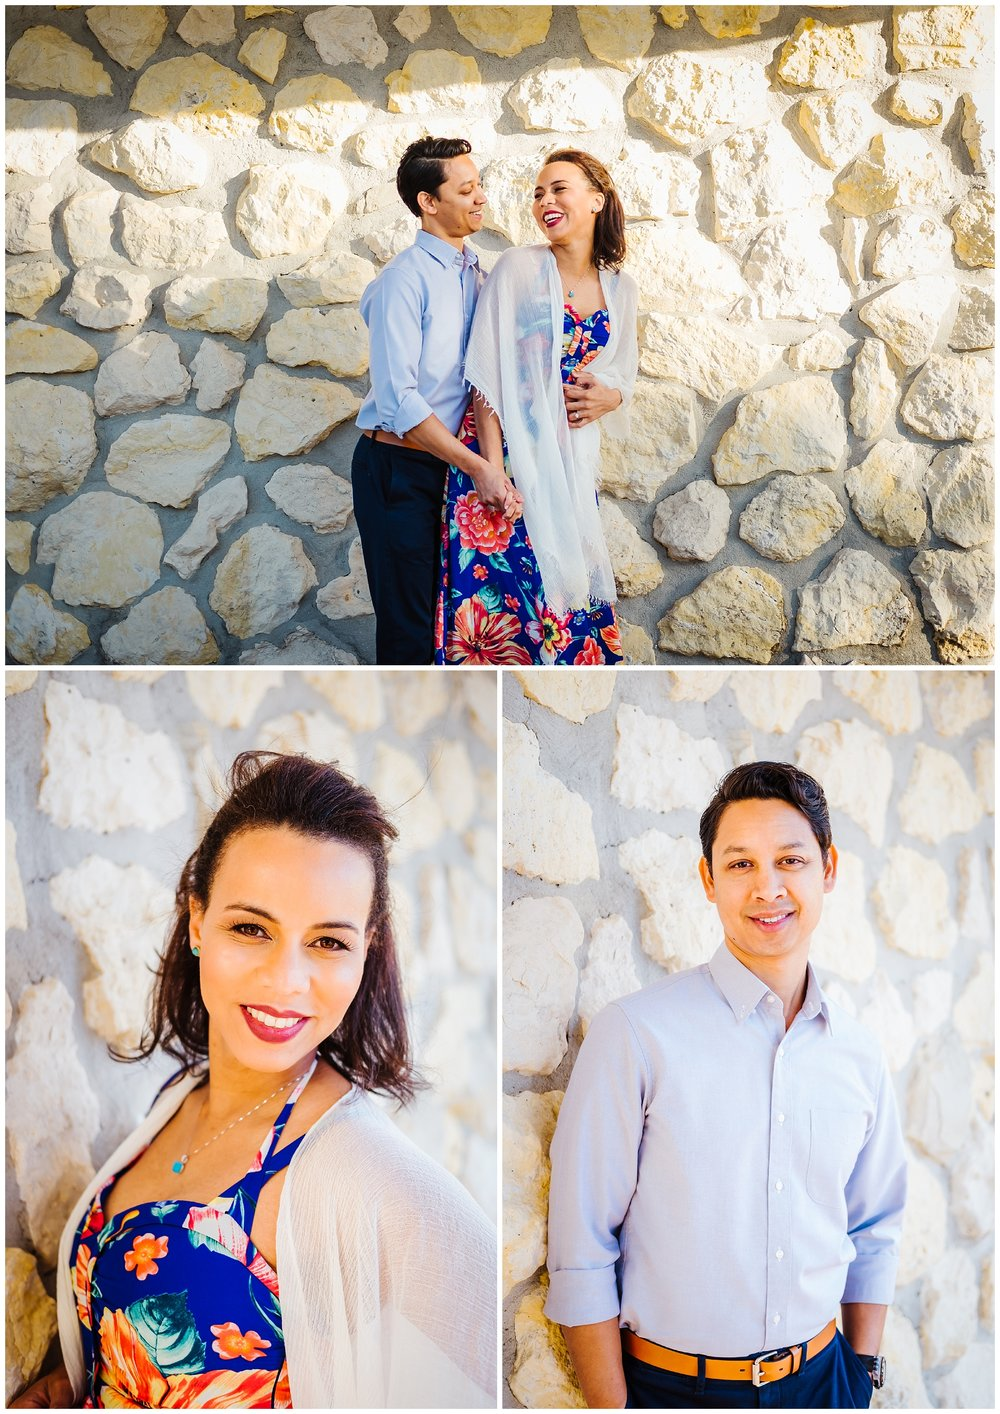 tampa-engagement-photographer-fort-desoto-ruins-sunset-colorful_0009.jpg